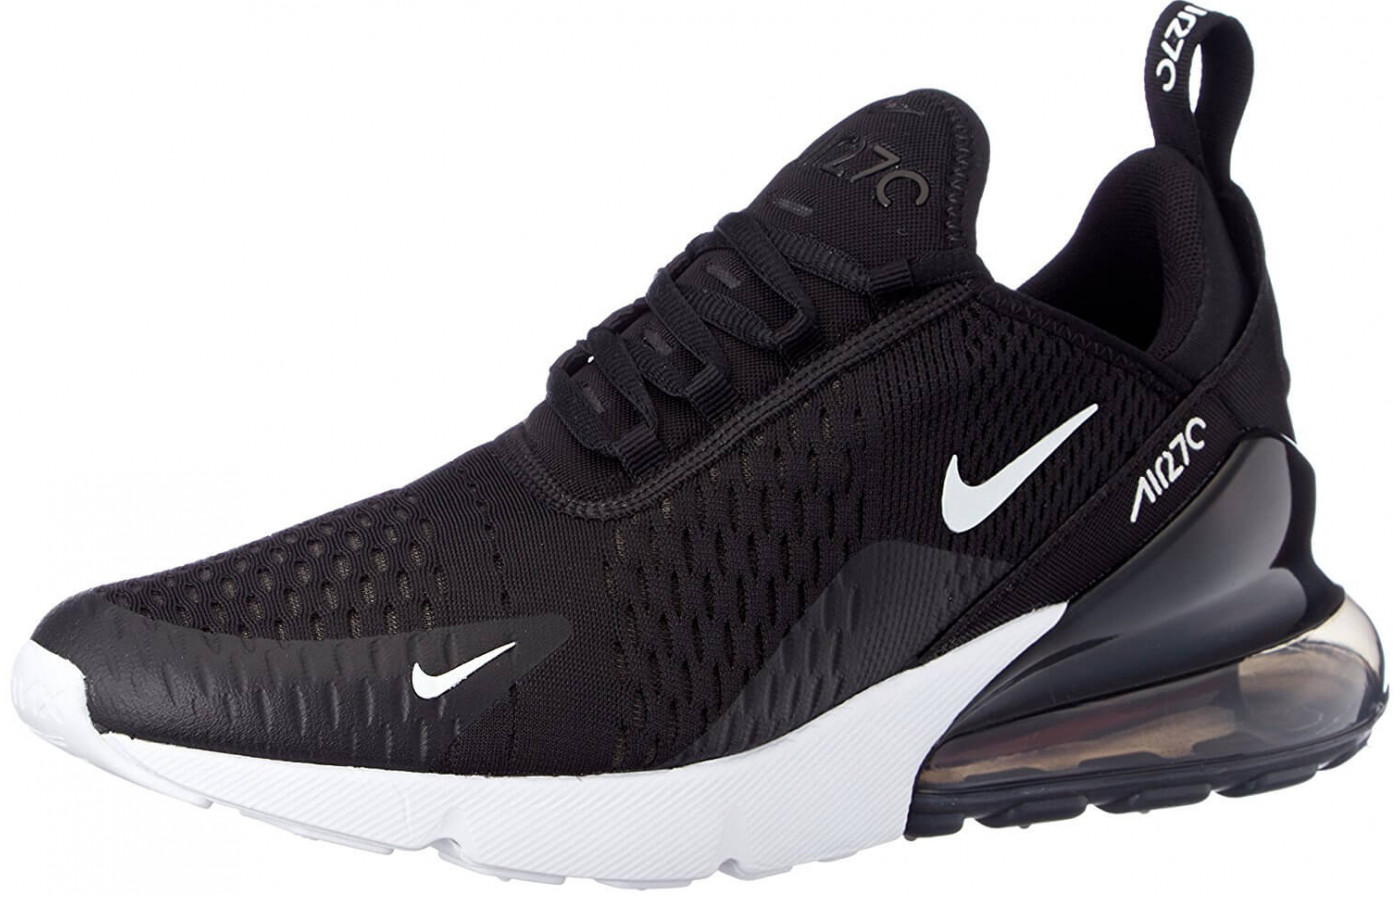 10dc6ecdb080 Nike Air Max 270. Mesh upper and 270 degrees of Air ...